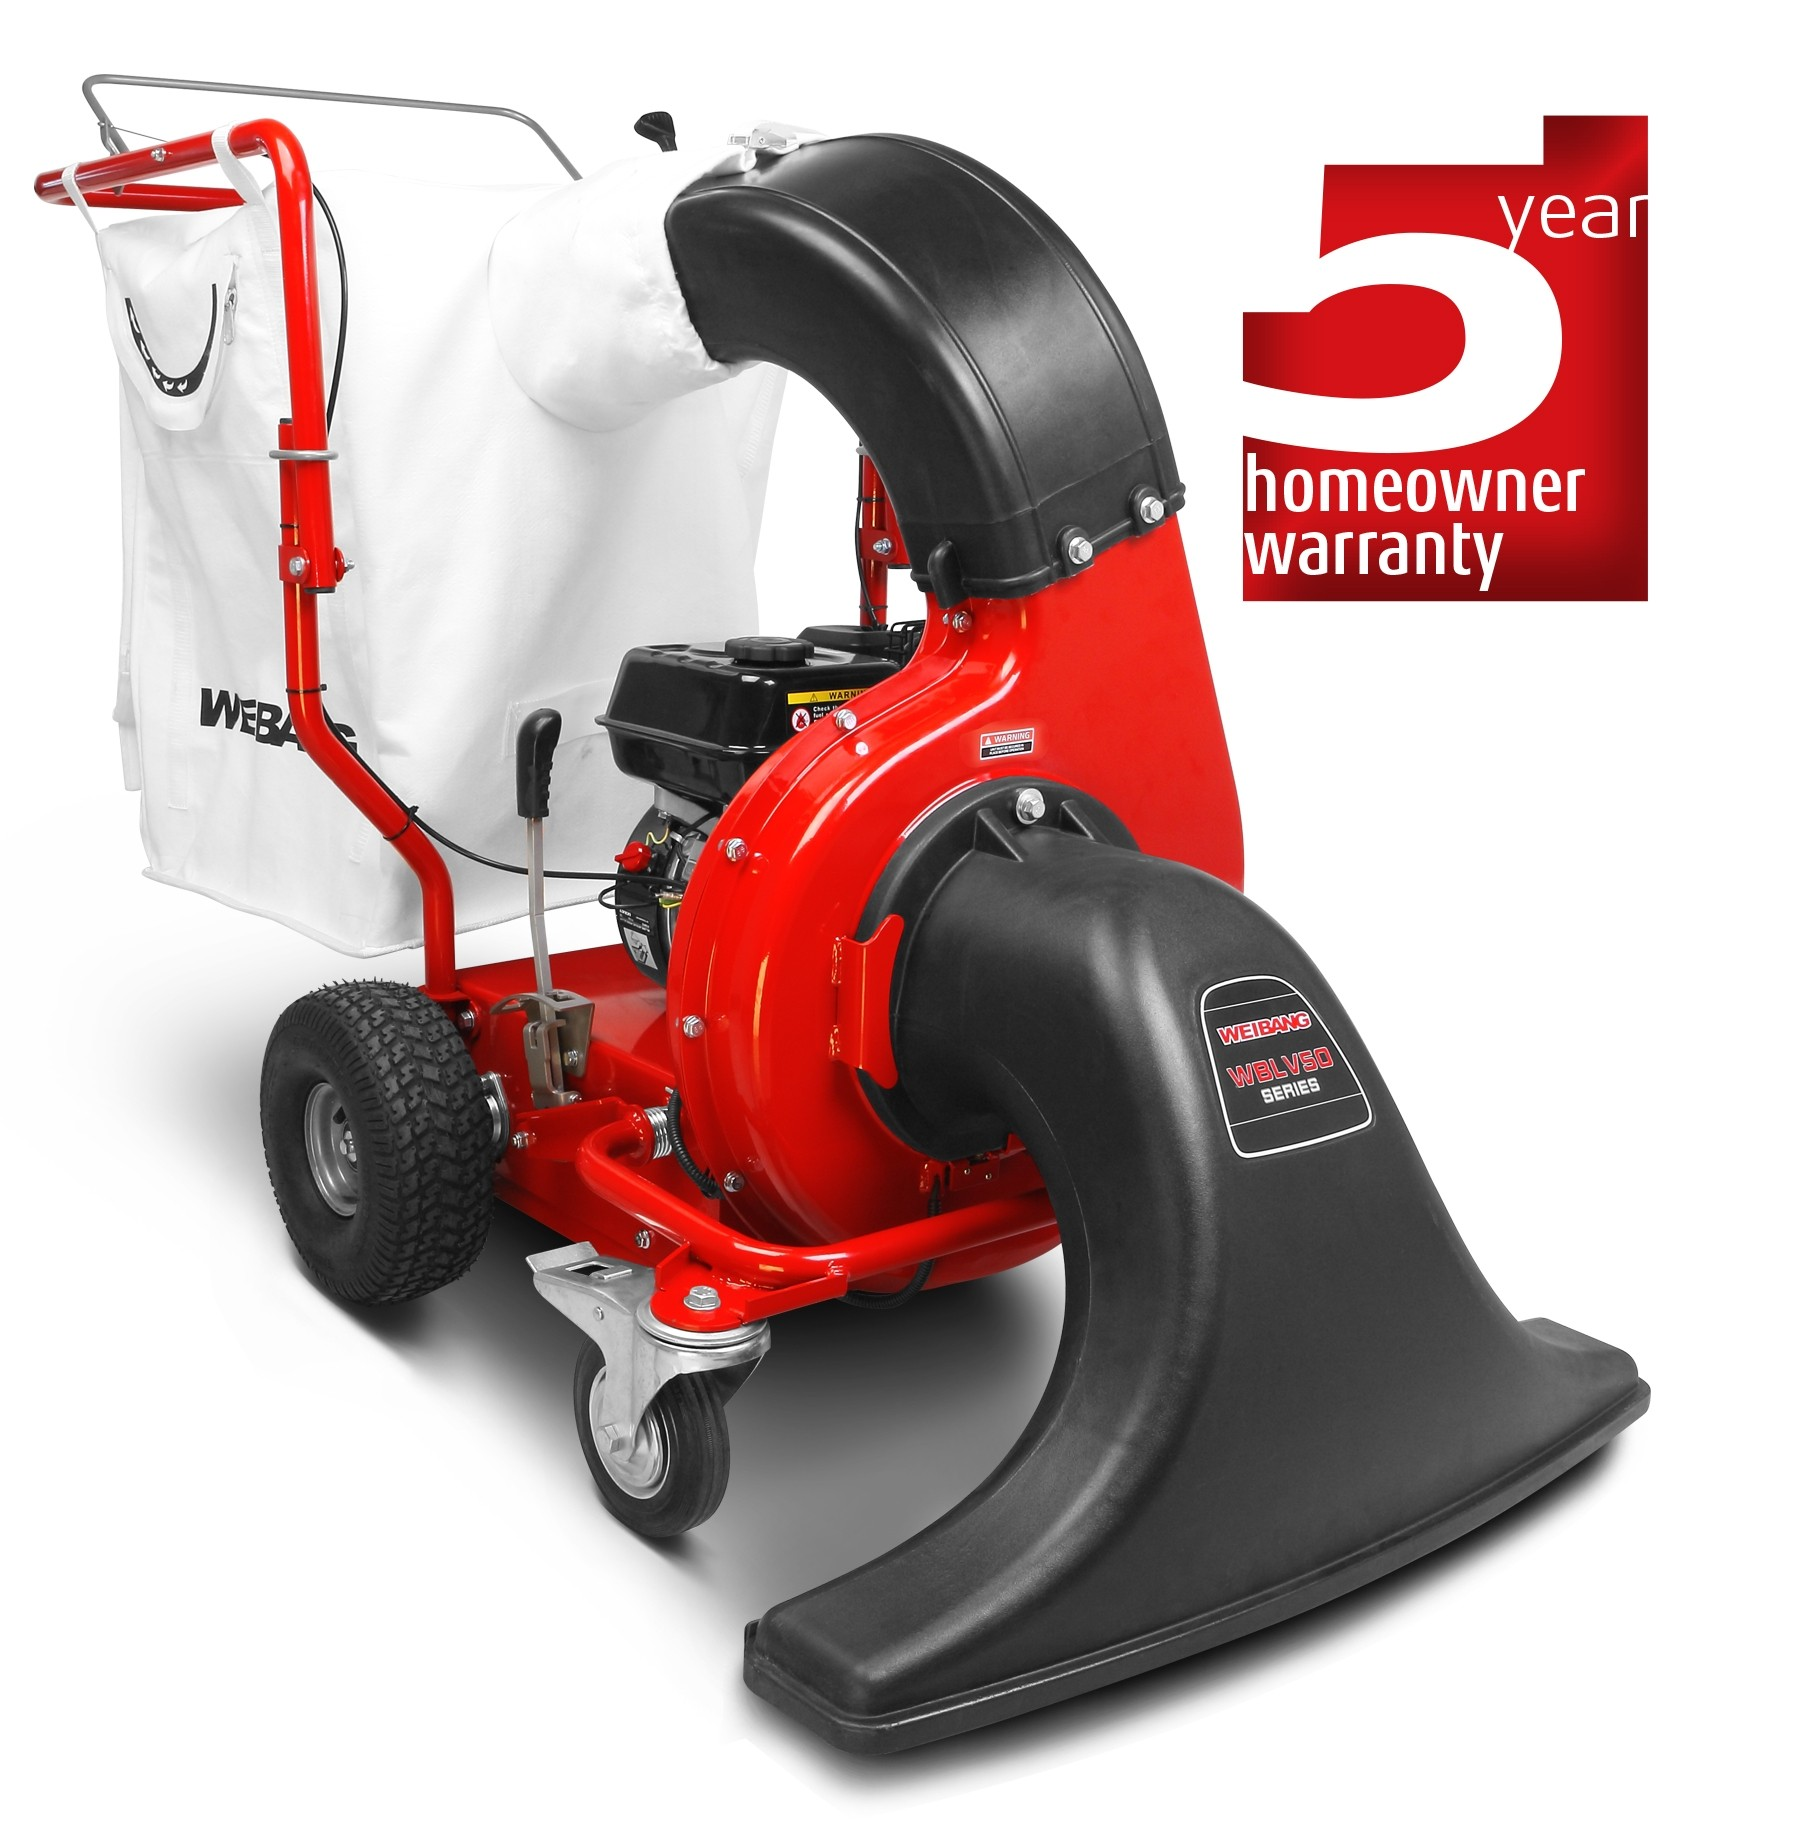 Weibang LV800 leaf and litter vacuum